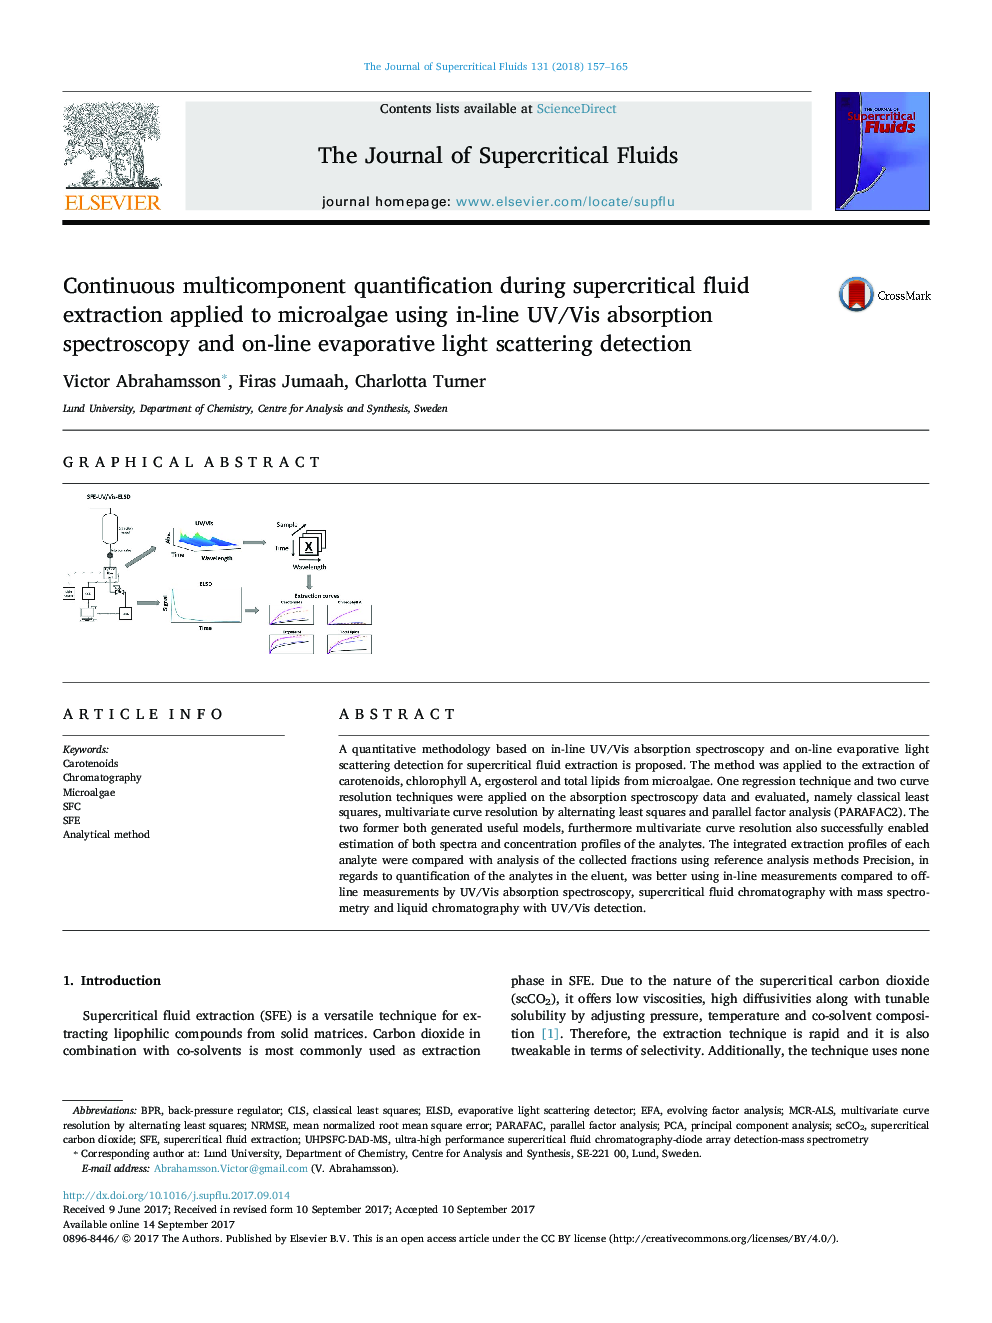 Continuous multicomponent quantification during supercritical fluid extraction applied to microalgae using in-line UV/Vis absorption spectroscopy and on-line evaporative light scattering detection